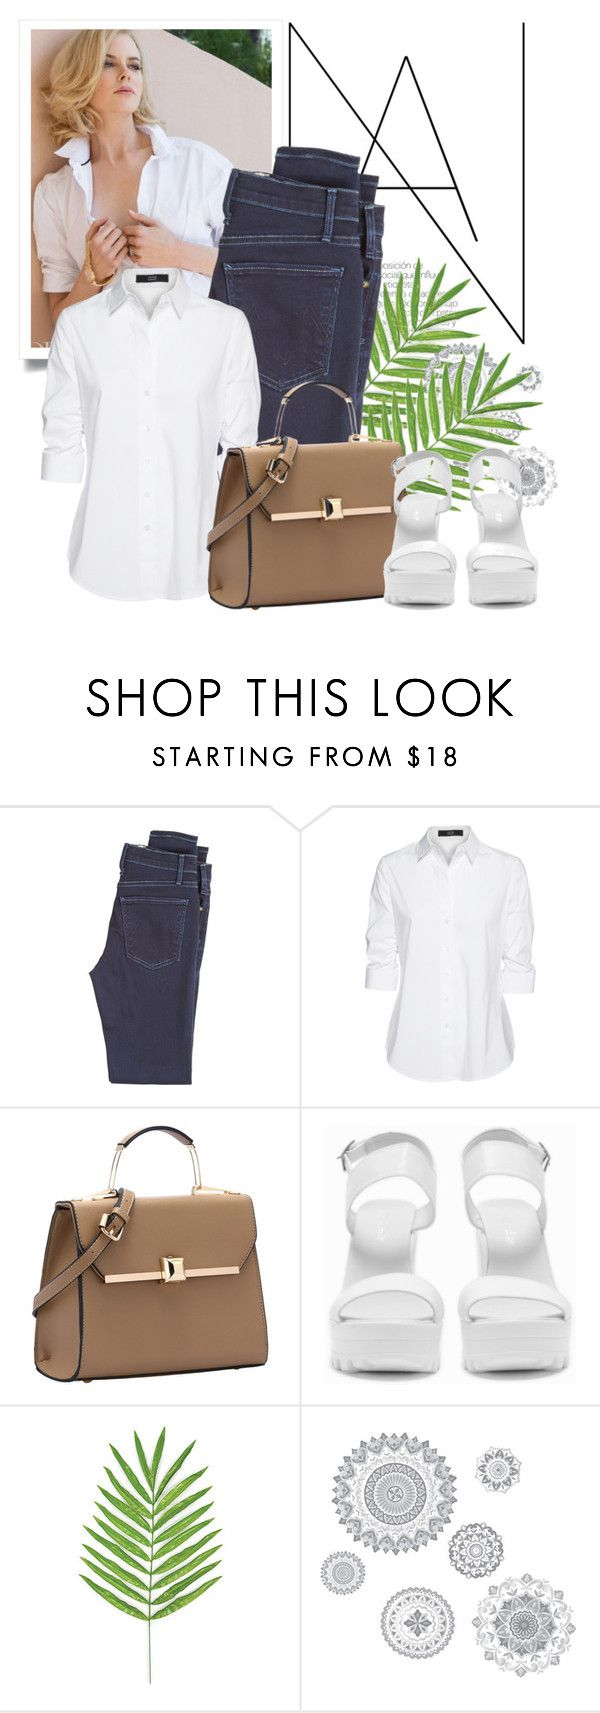 """Untitled #8949"" by queenrachietemplateaddict ❤ liked on Polyvore featuring McGuire Denim, Steffen Schraut, Nly Shoes and WallPops"